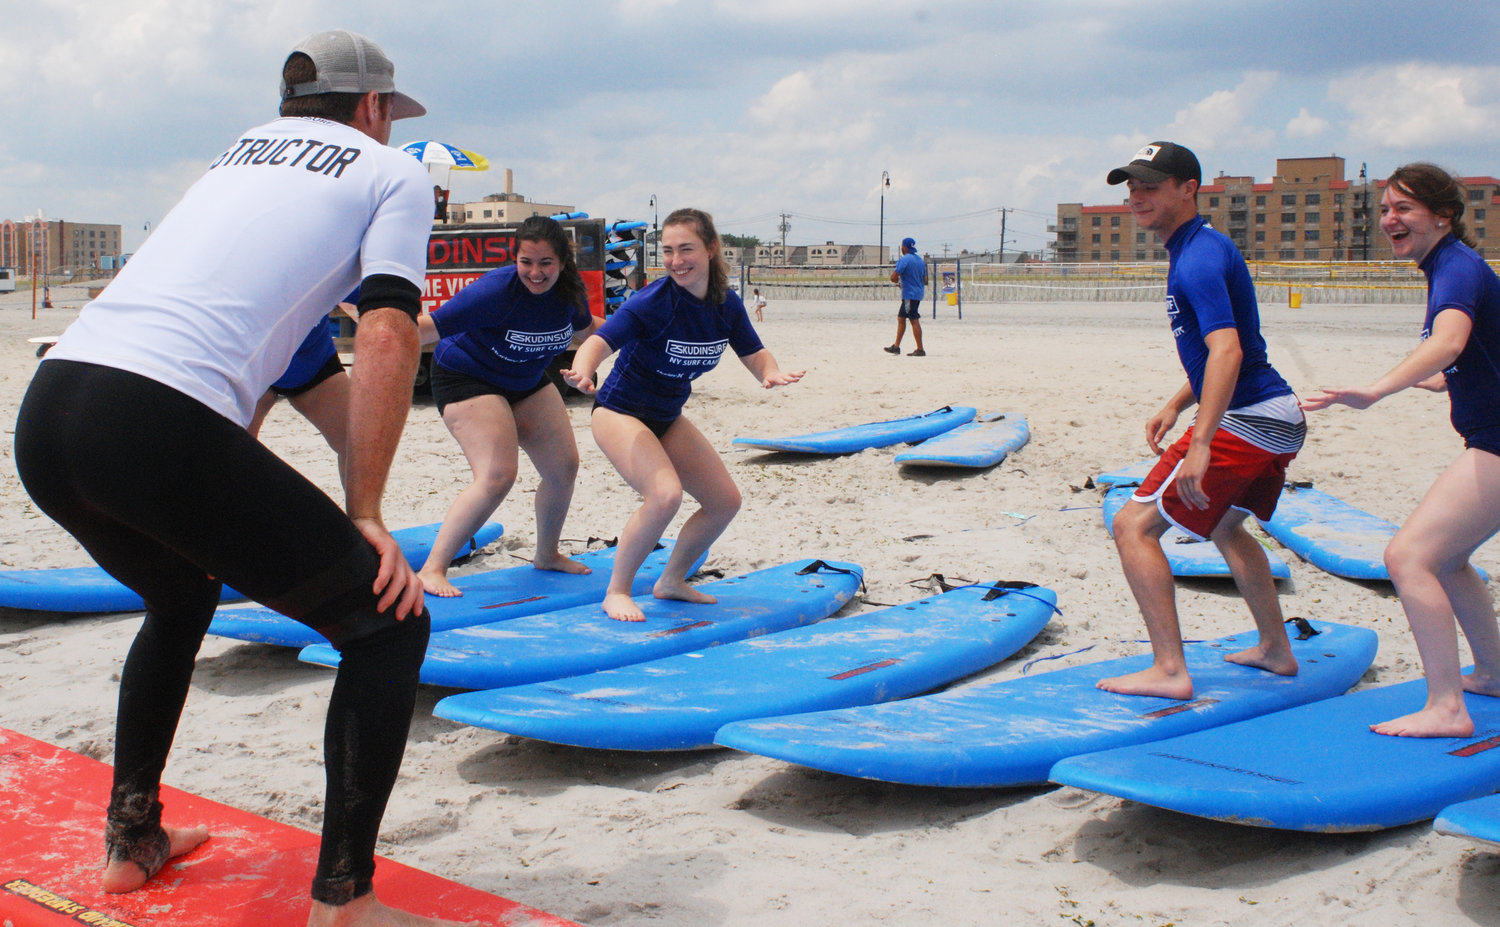 The Herald crew began their surfing lesson by learning how to steady themselves on their boards. At left were, at front, instructor Ian Skudin, and from left, Herald staffers Alyssa Seidman and Bridget Downes, intern Frank Gargano, and staffer Melissa Koenig.